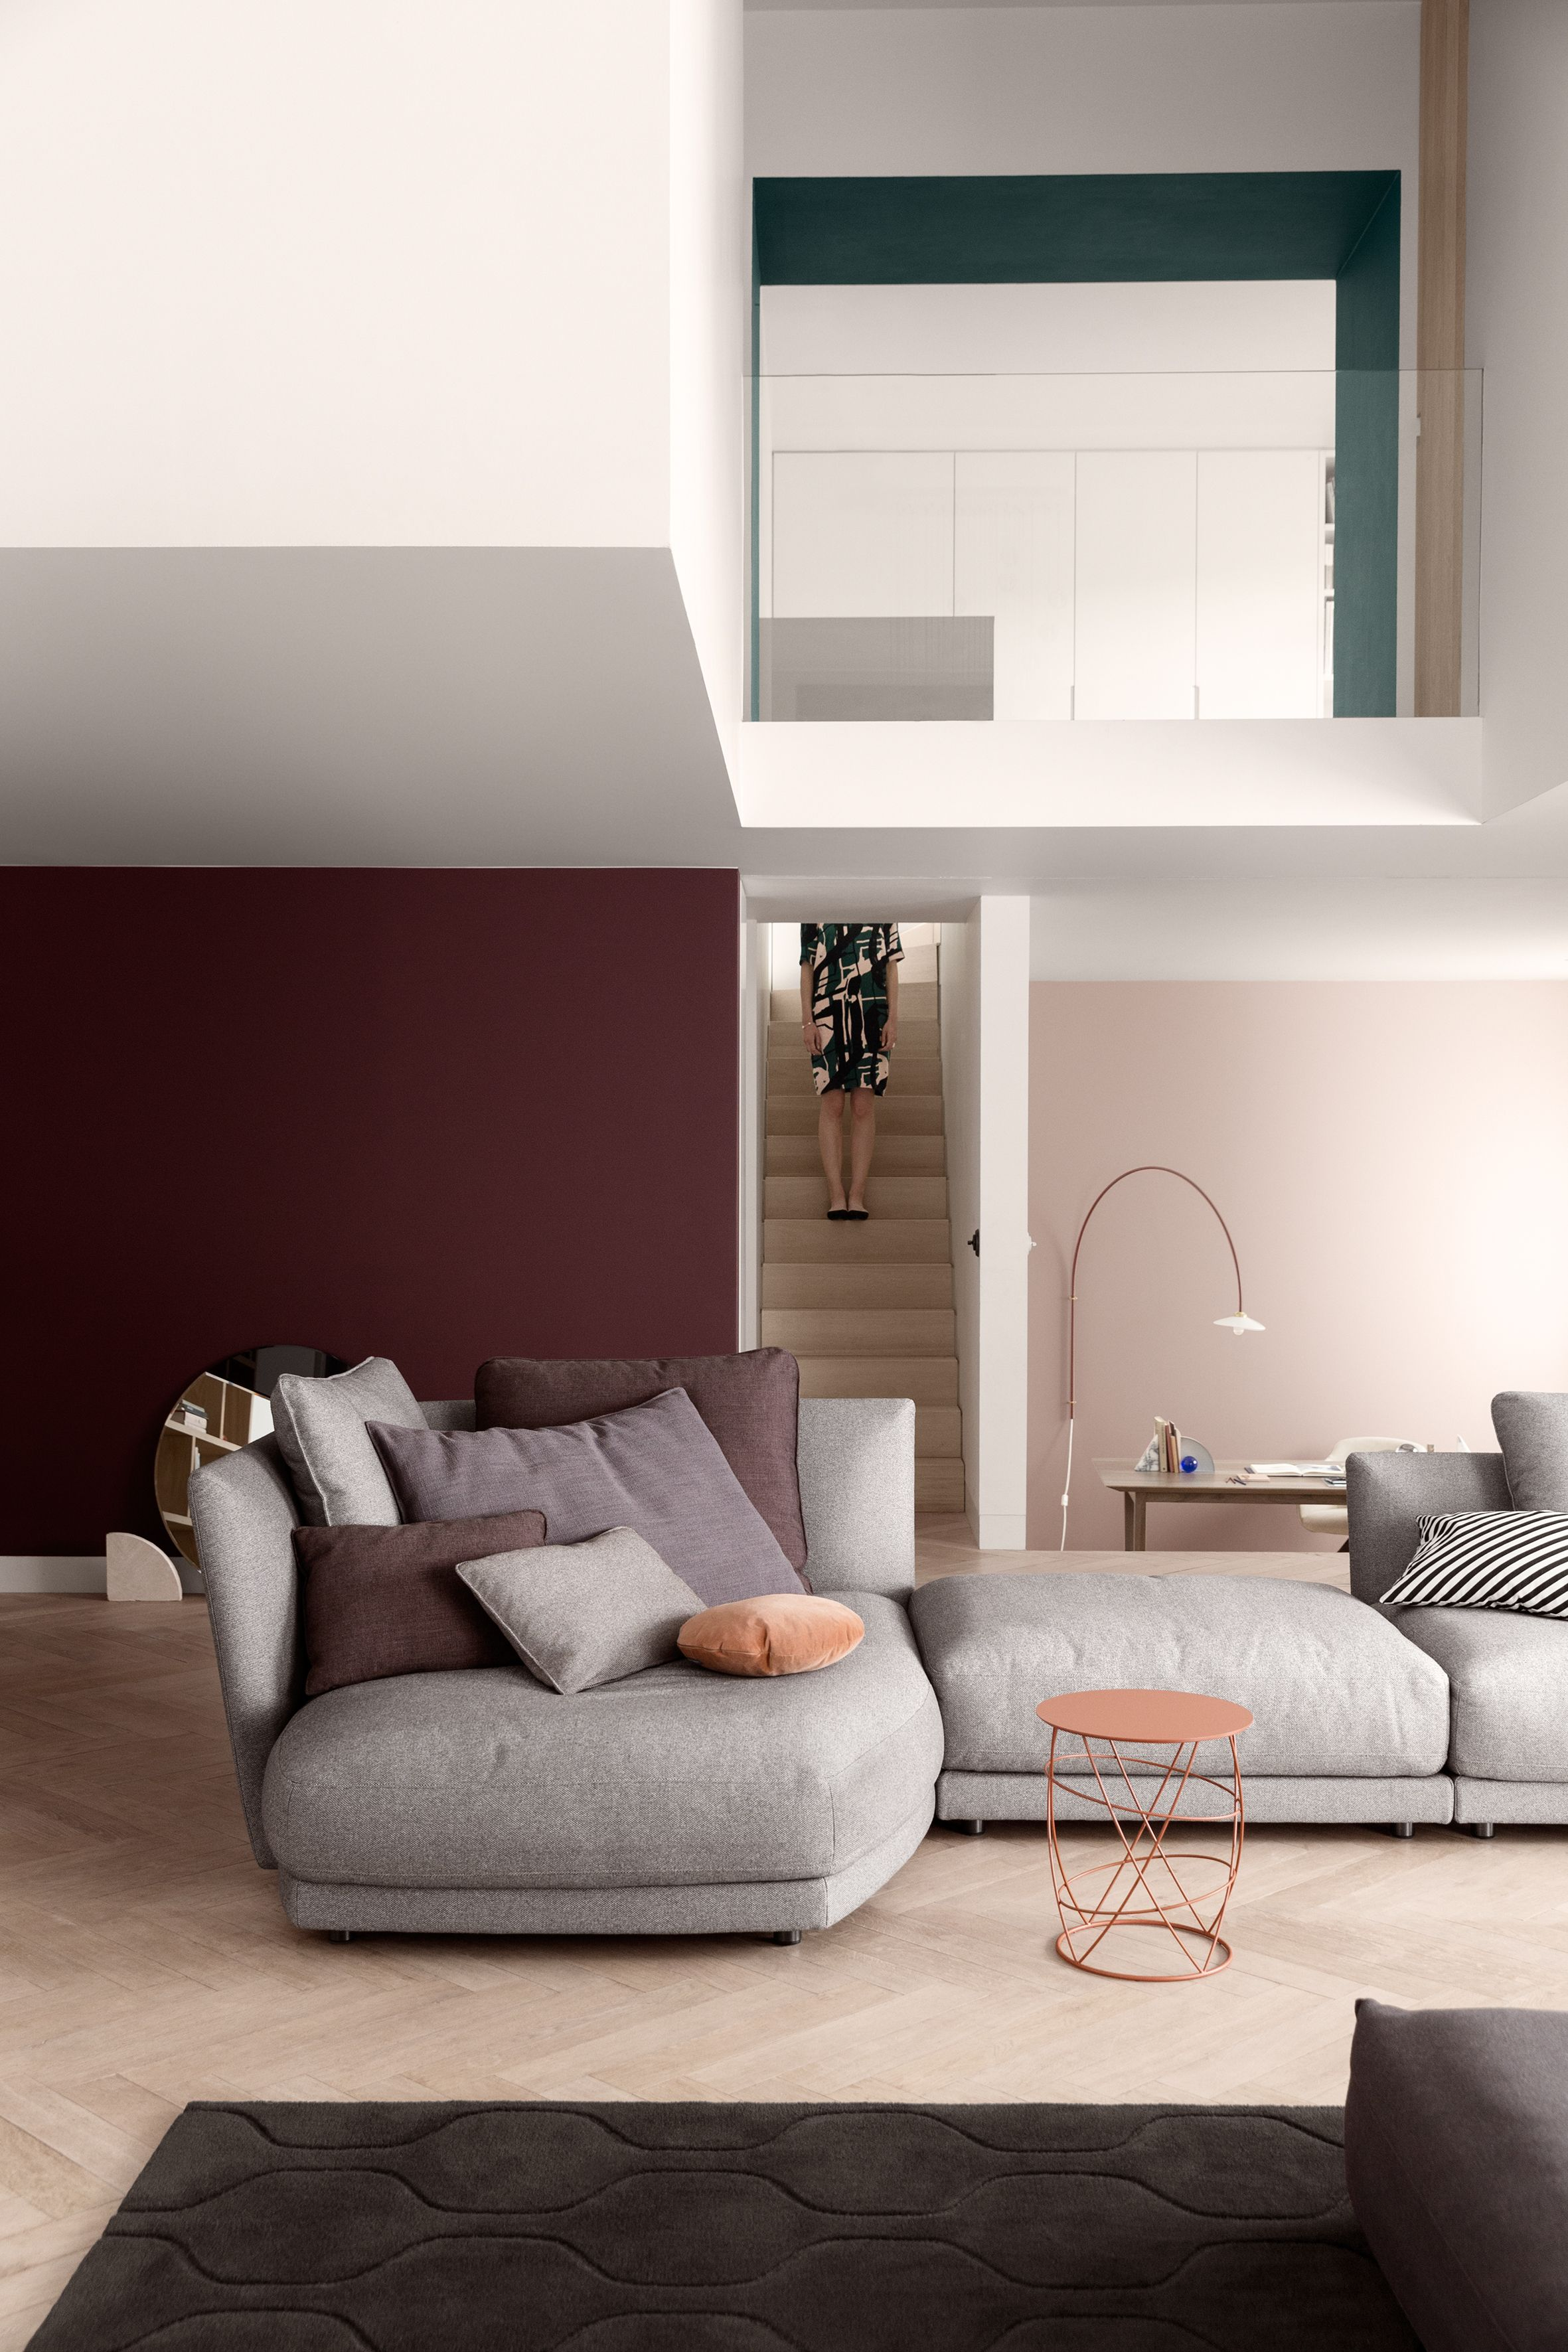 Rolf Benz Tondo Sofa Is Incredibly Cozy The Tondo Comes In Two Different Comfort Levels Choose The Right One For You And Make You Schuller Color Composition